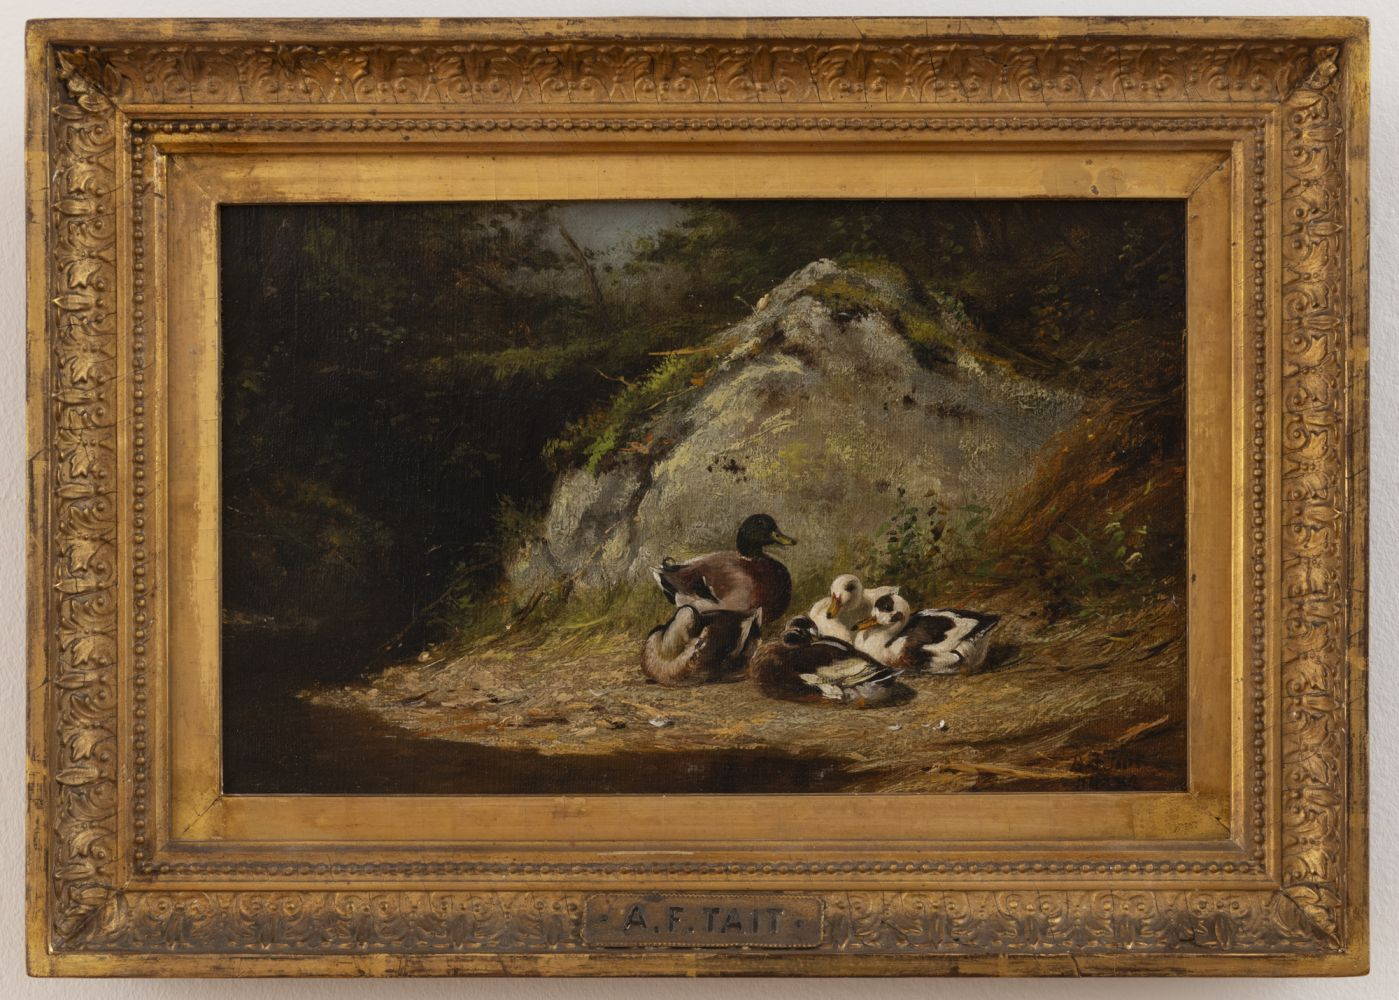 Arthur Fitzwilliam Tait (1819–1905), Ducks Sunning, 1882, oil on canvas, 6 1/2 x 10 1/2 in., signed and dated lower right (framed)